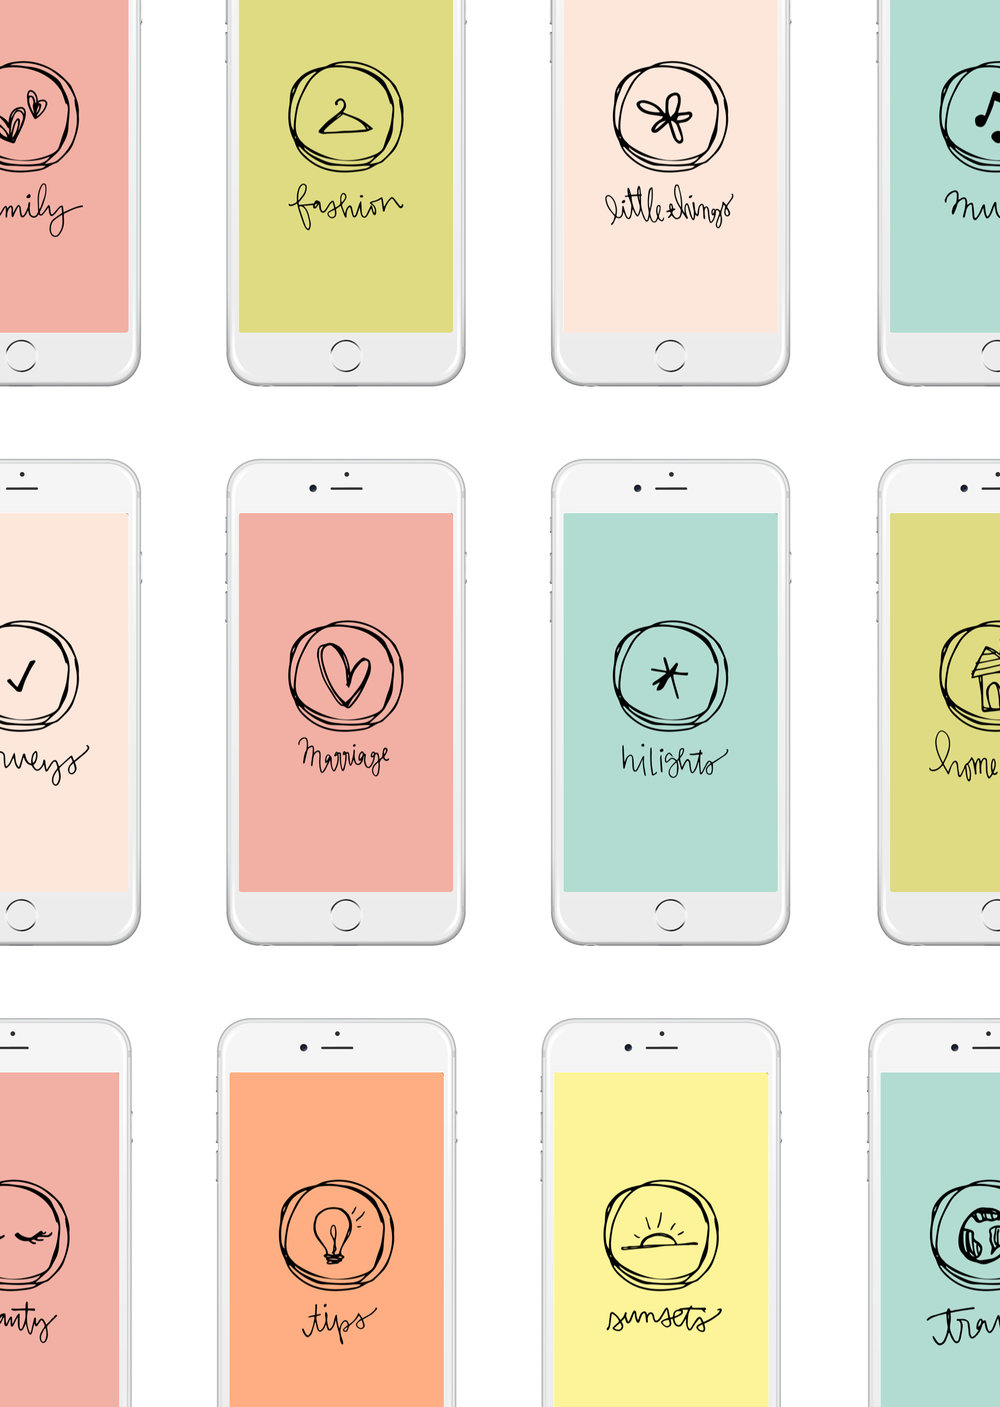 Summer icon set - Full set of 19 screens to use for your instagram hilights!CLICK HERE TO DOWNLOAD